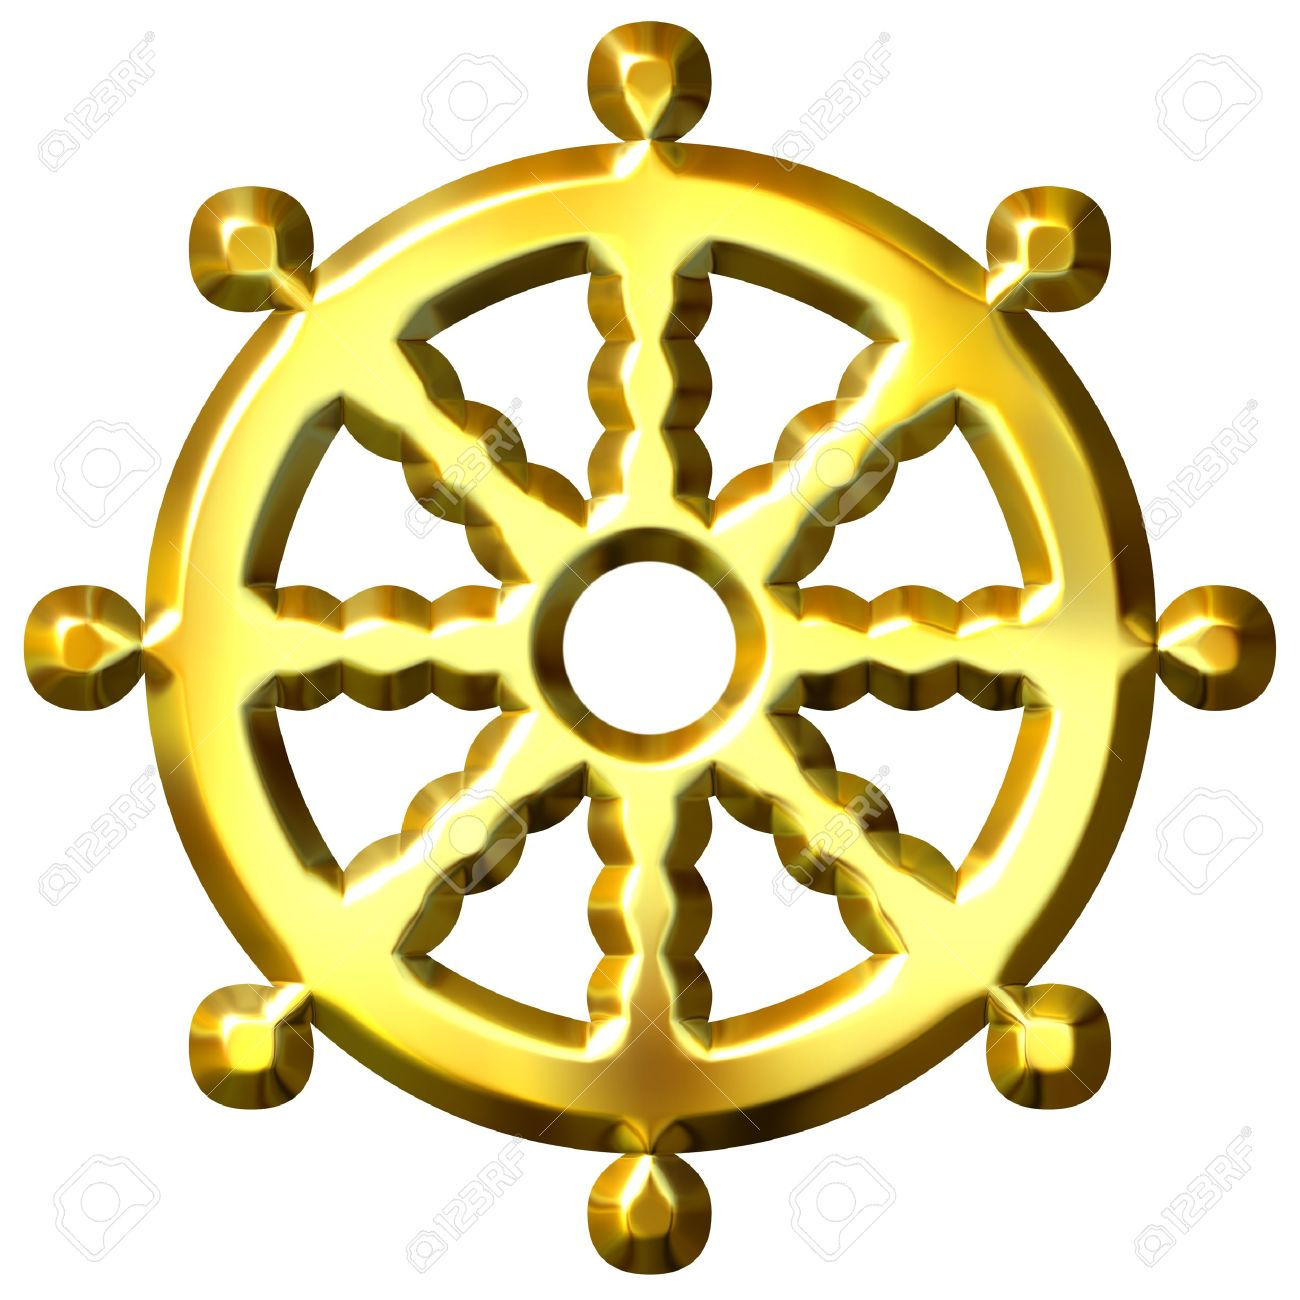 3d Golden Buddhism Symbol Wheel Of Dharma Isolated In White Stock